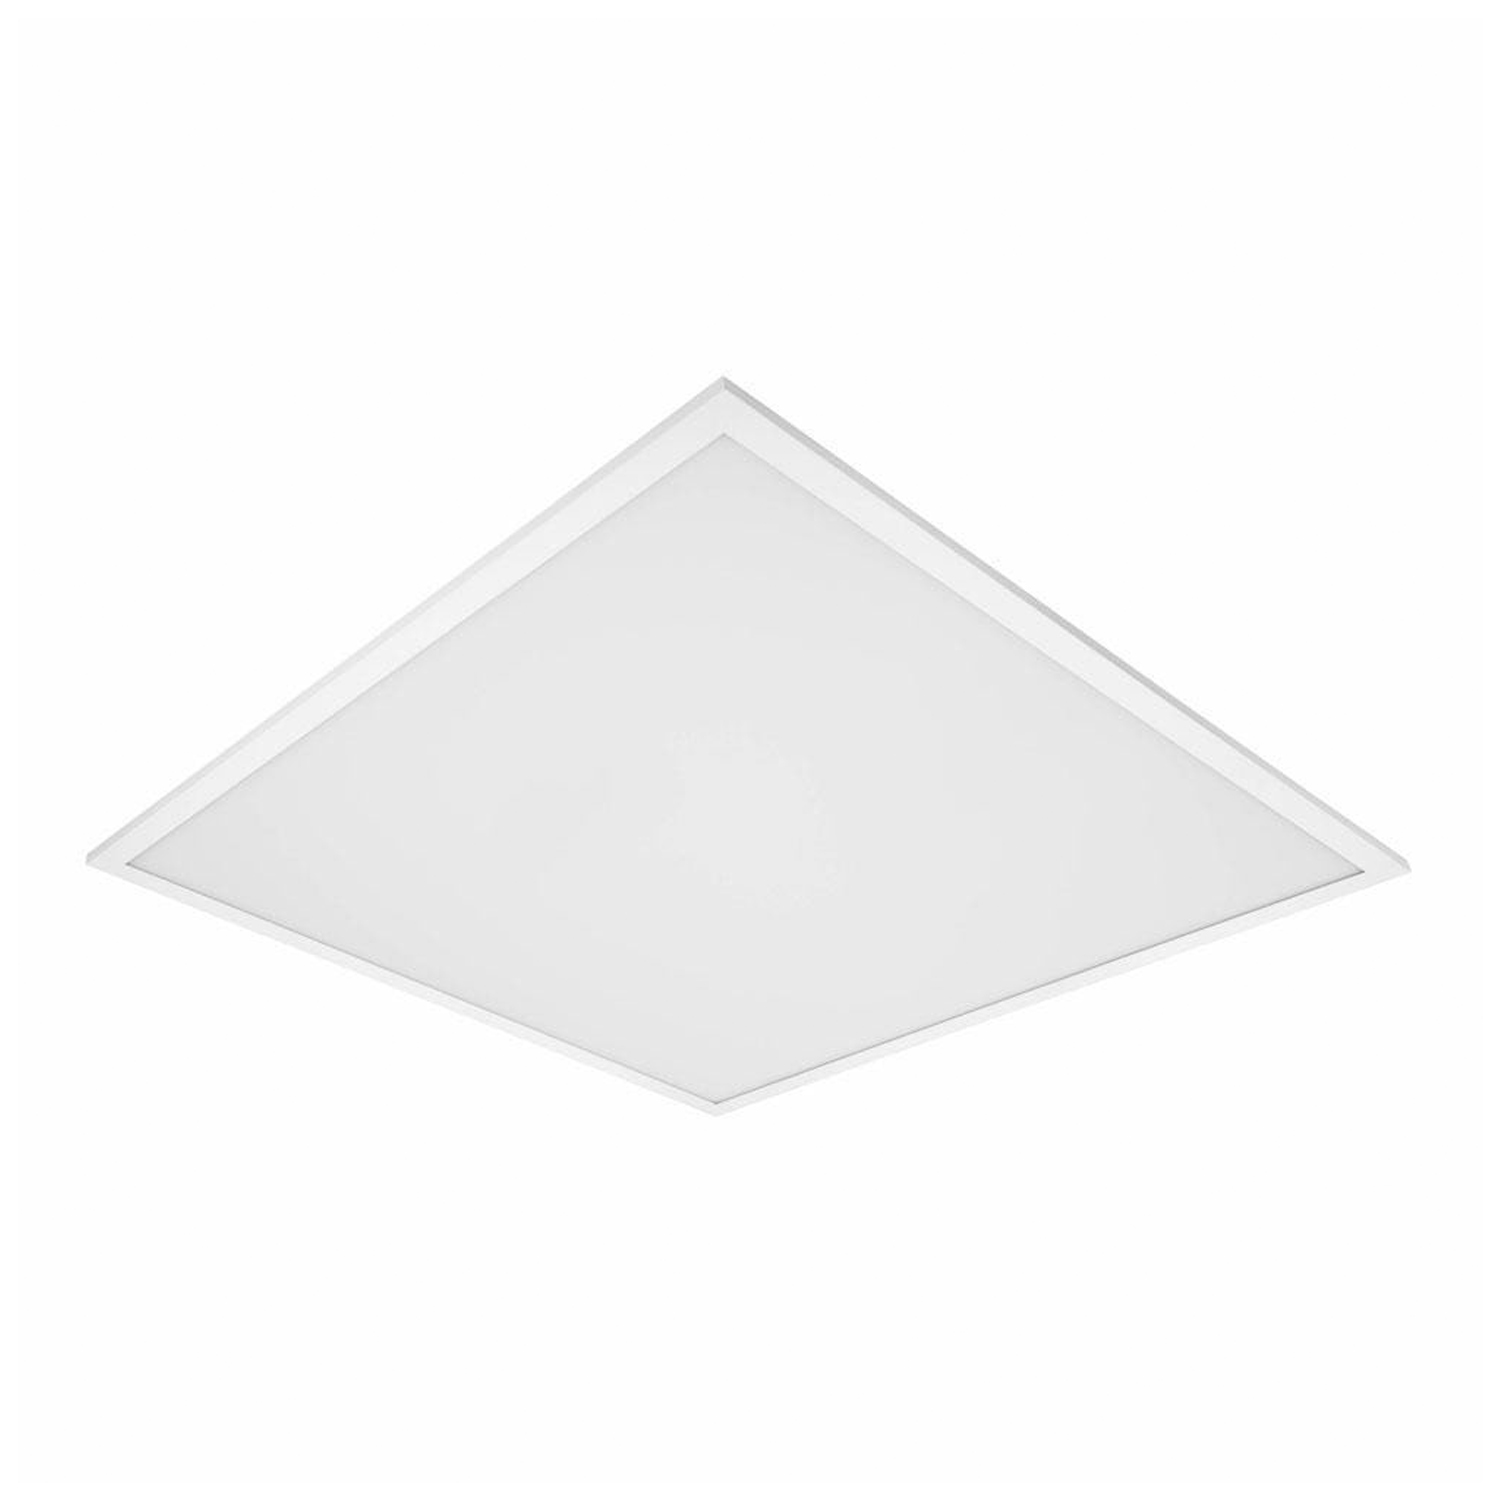 Ledvance LED Panel 60x60cm 4000K 36W IP54   Dali Dimmable - Replacer for 4x18W